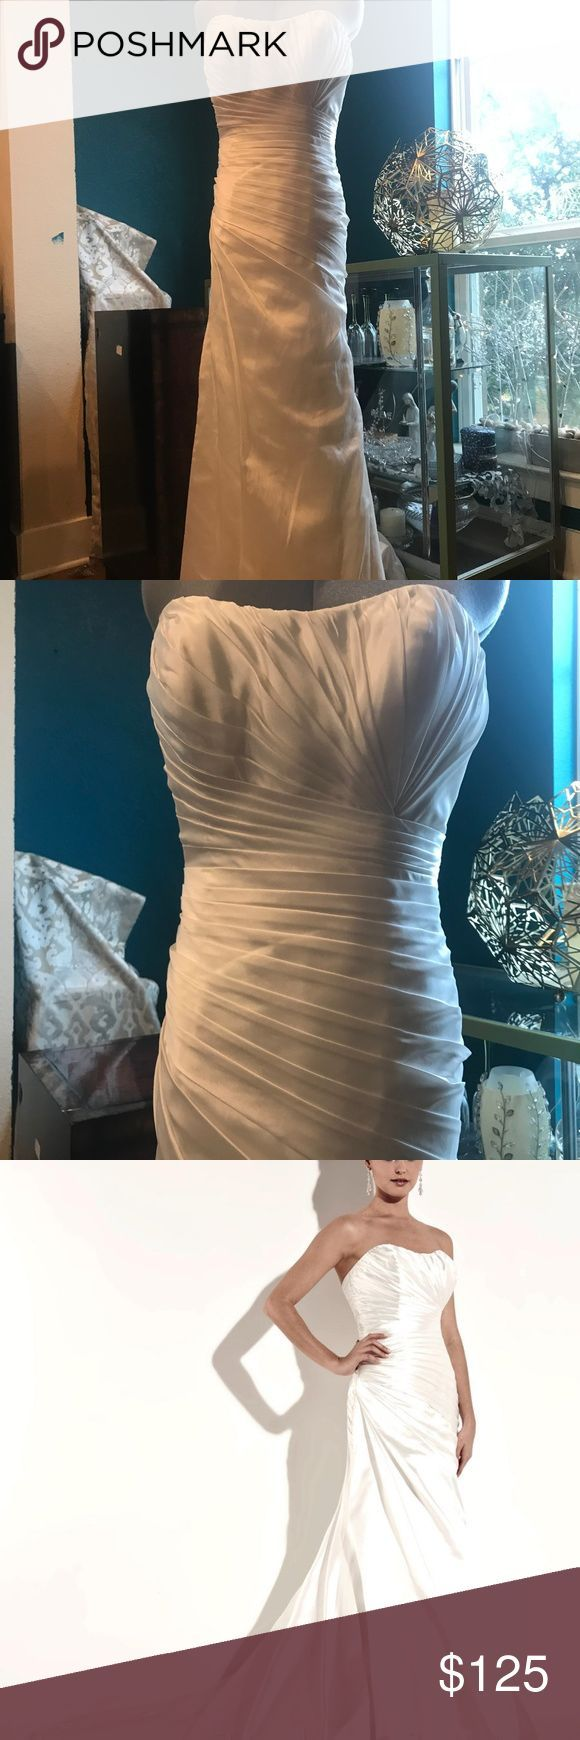 NEW! Jacquelin Exclusive 19942 Ivory Bridal Dress Sleek and chic, this elegant wedding dress is simply stunning with a pleated sweetehart neckline and